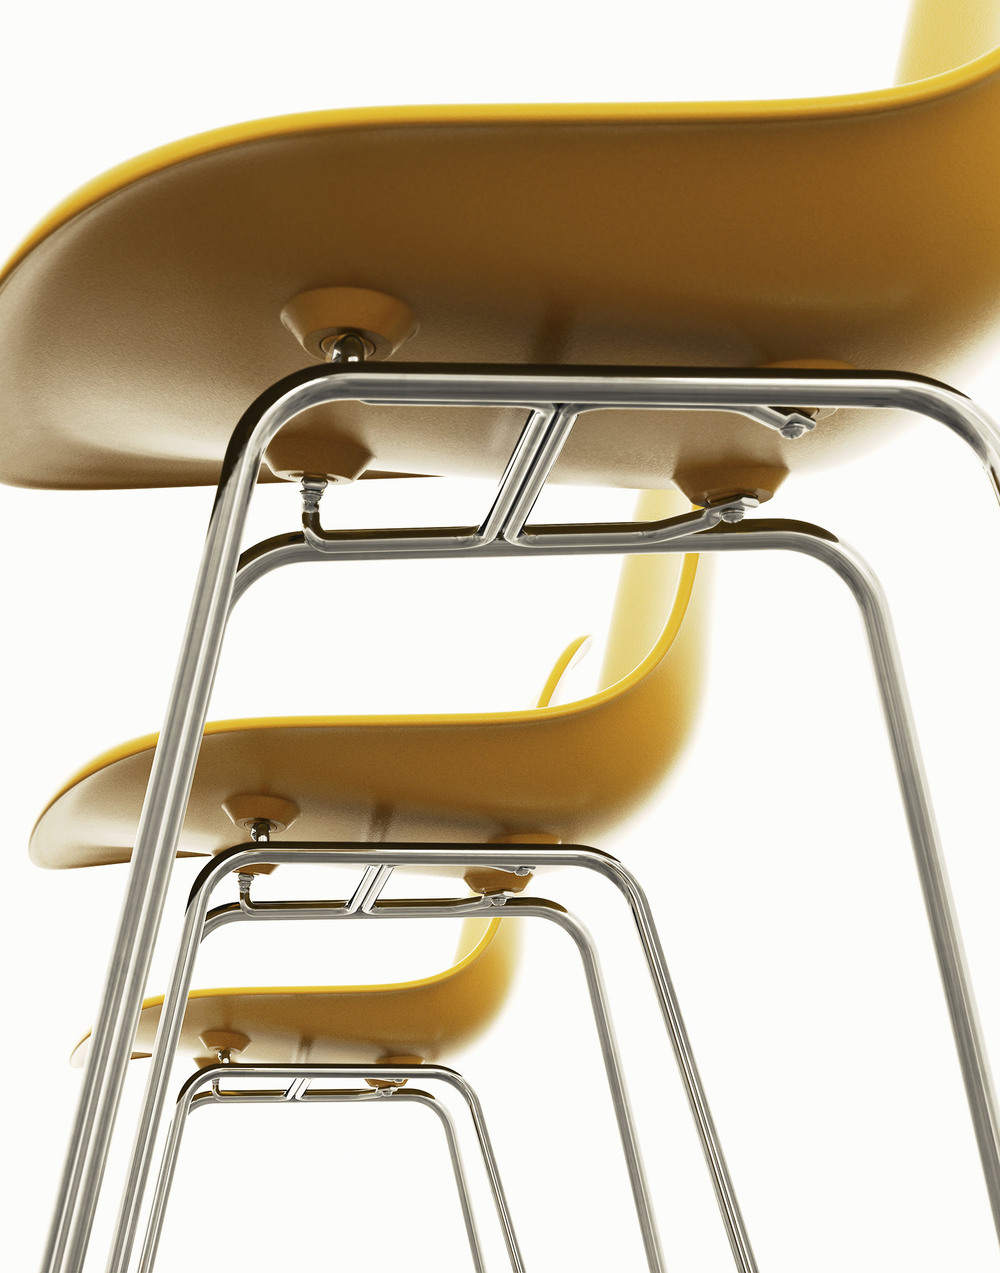 038Eames_Yellow.jpg